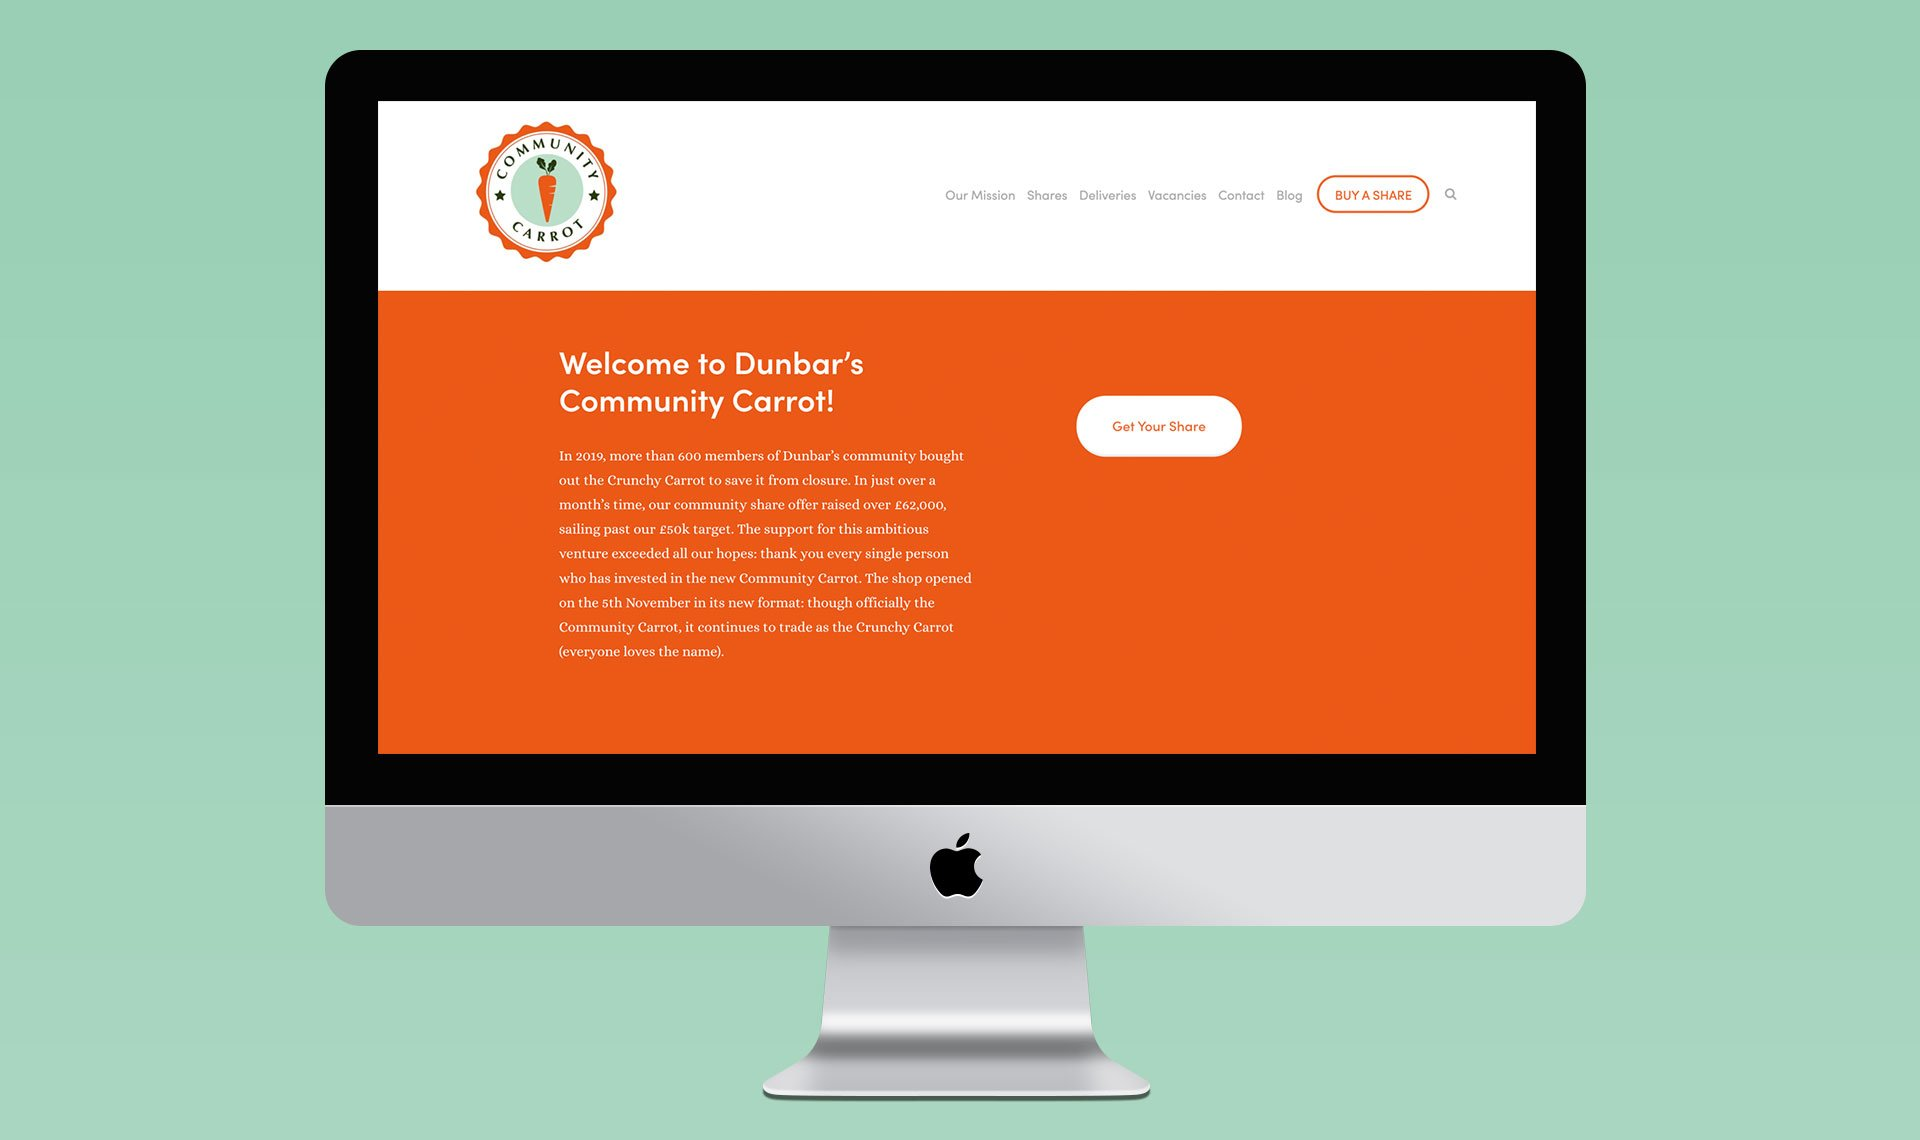 Community Carrot website design with Kate George and Ema J